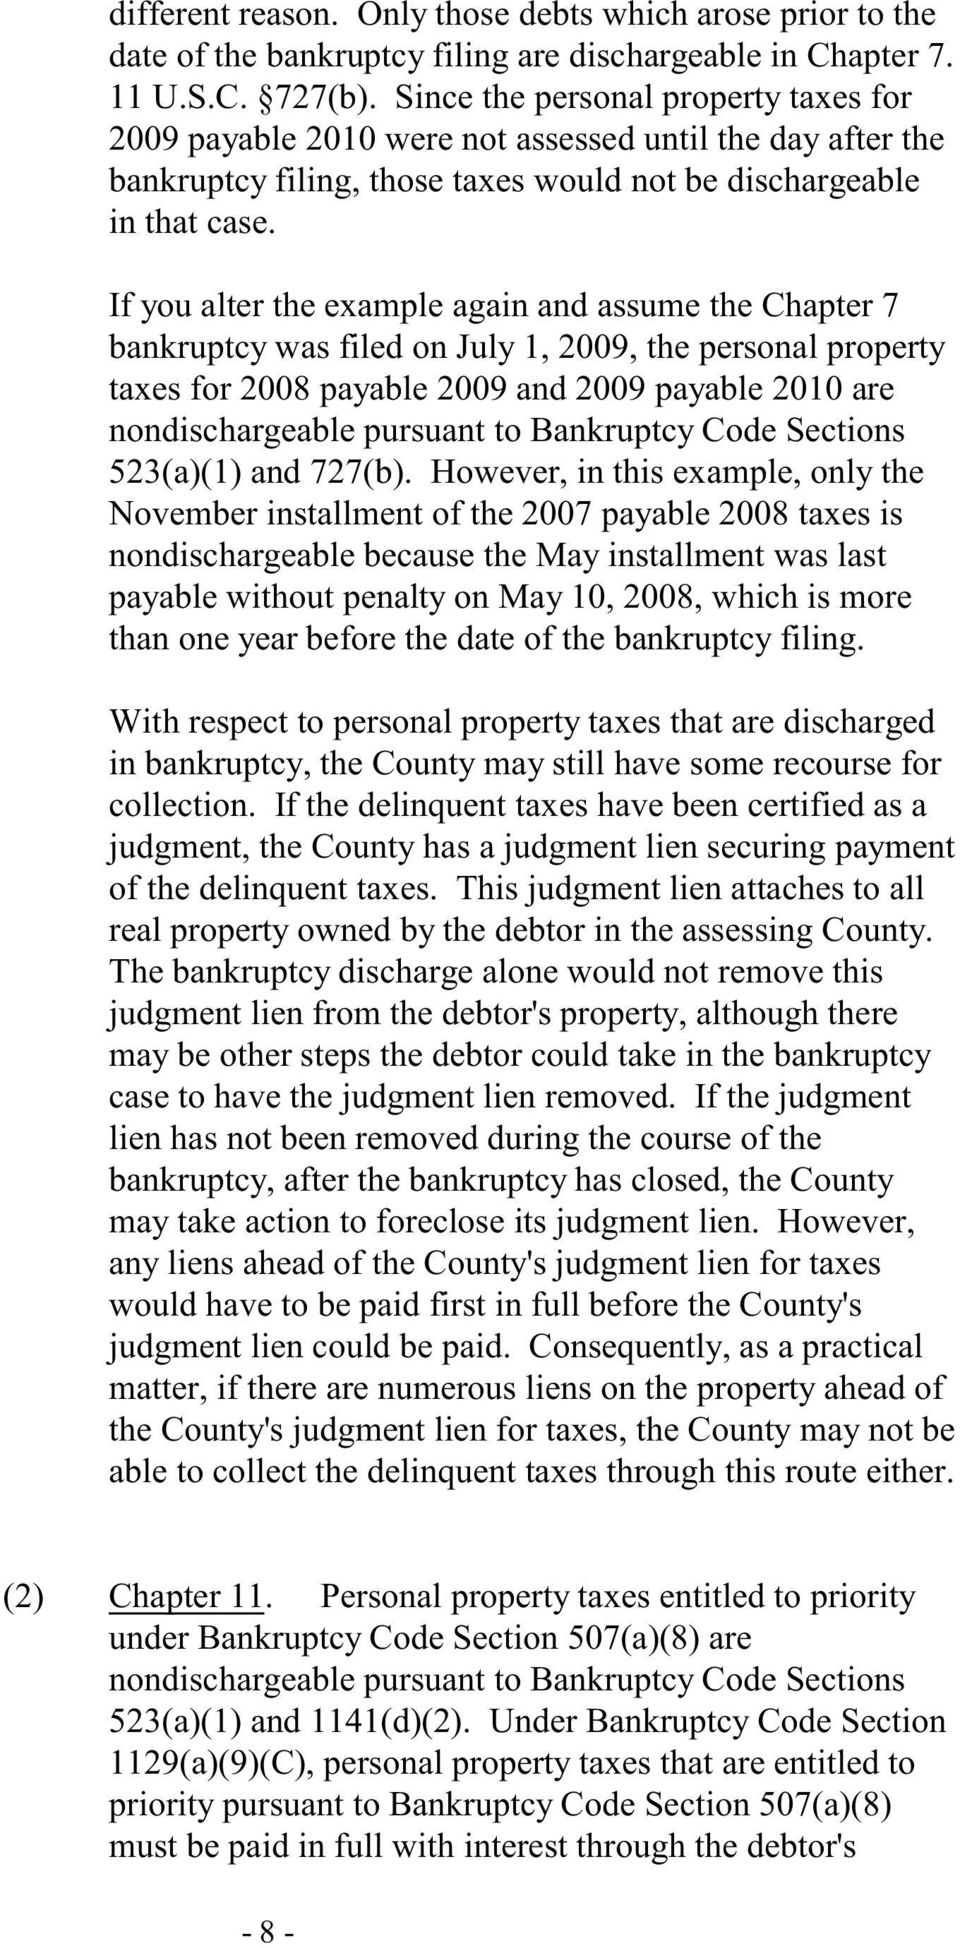 If you alter the example again and assume the Chapter 7 bankruptcy was filed on July 1, 2009, the personal property taxes for 2008 payable 2009 and 2009 payable 2010 are nondischargeable pursuant to